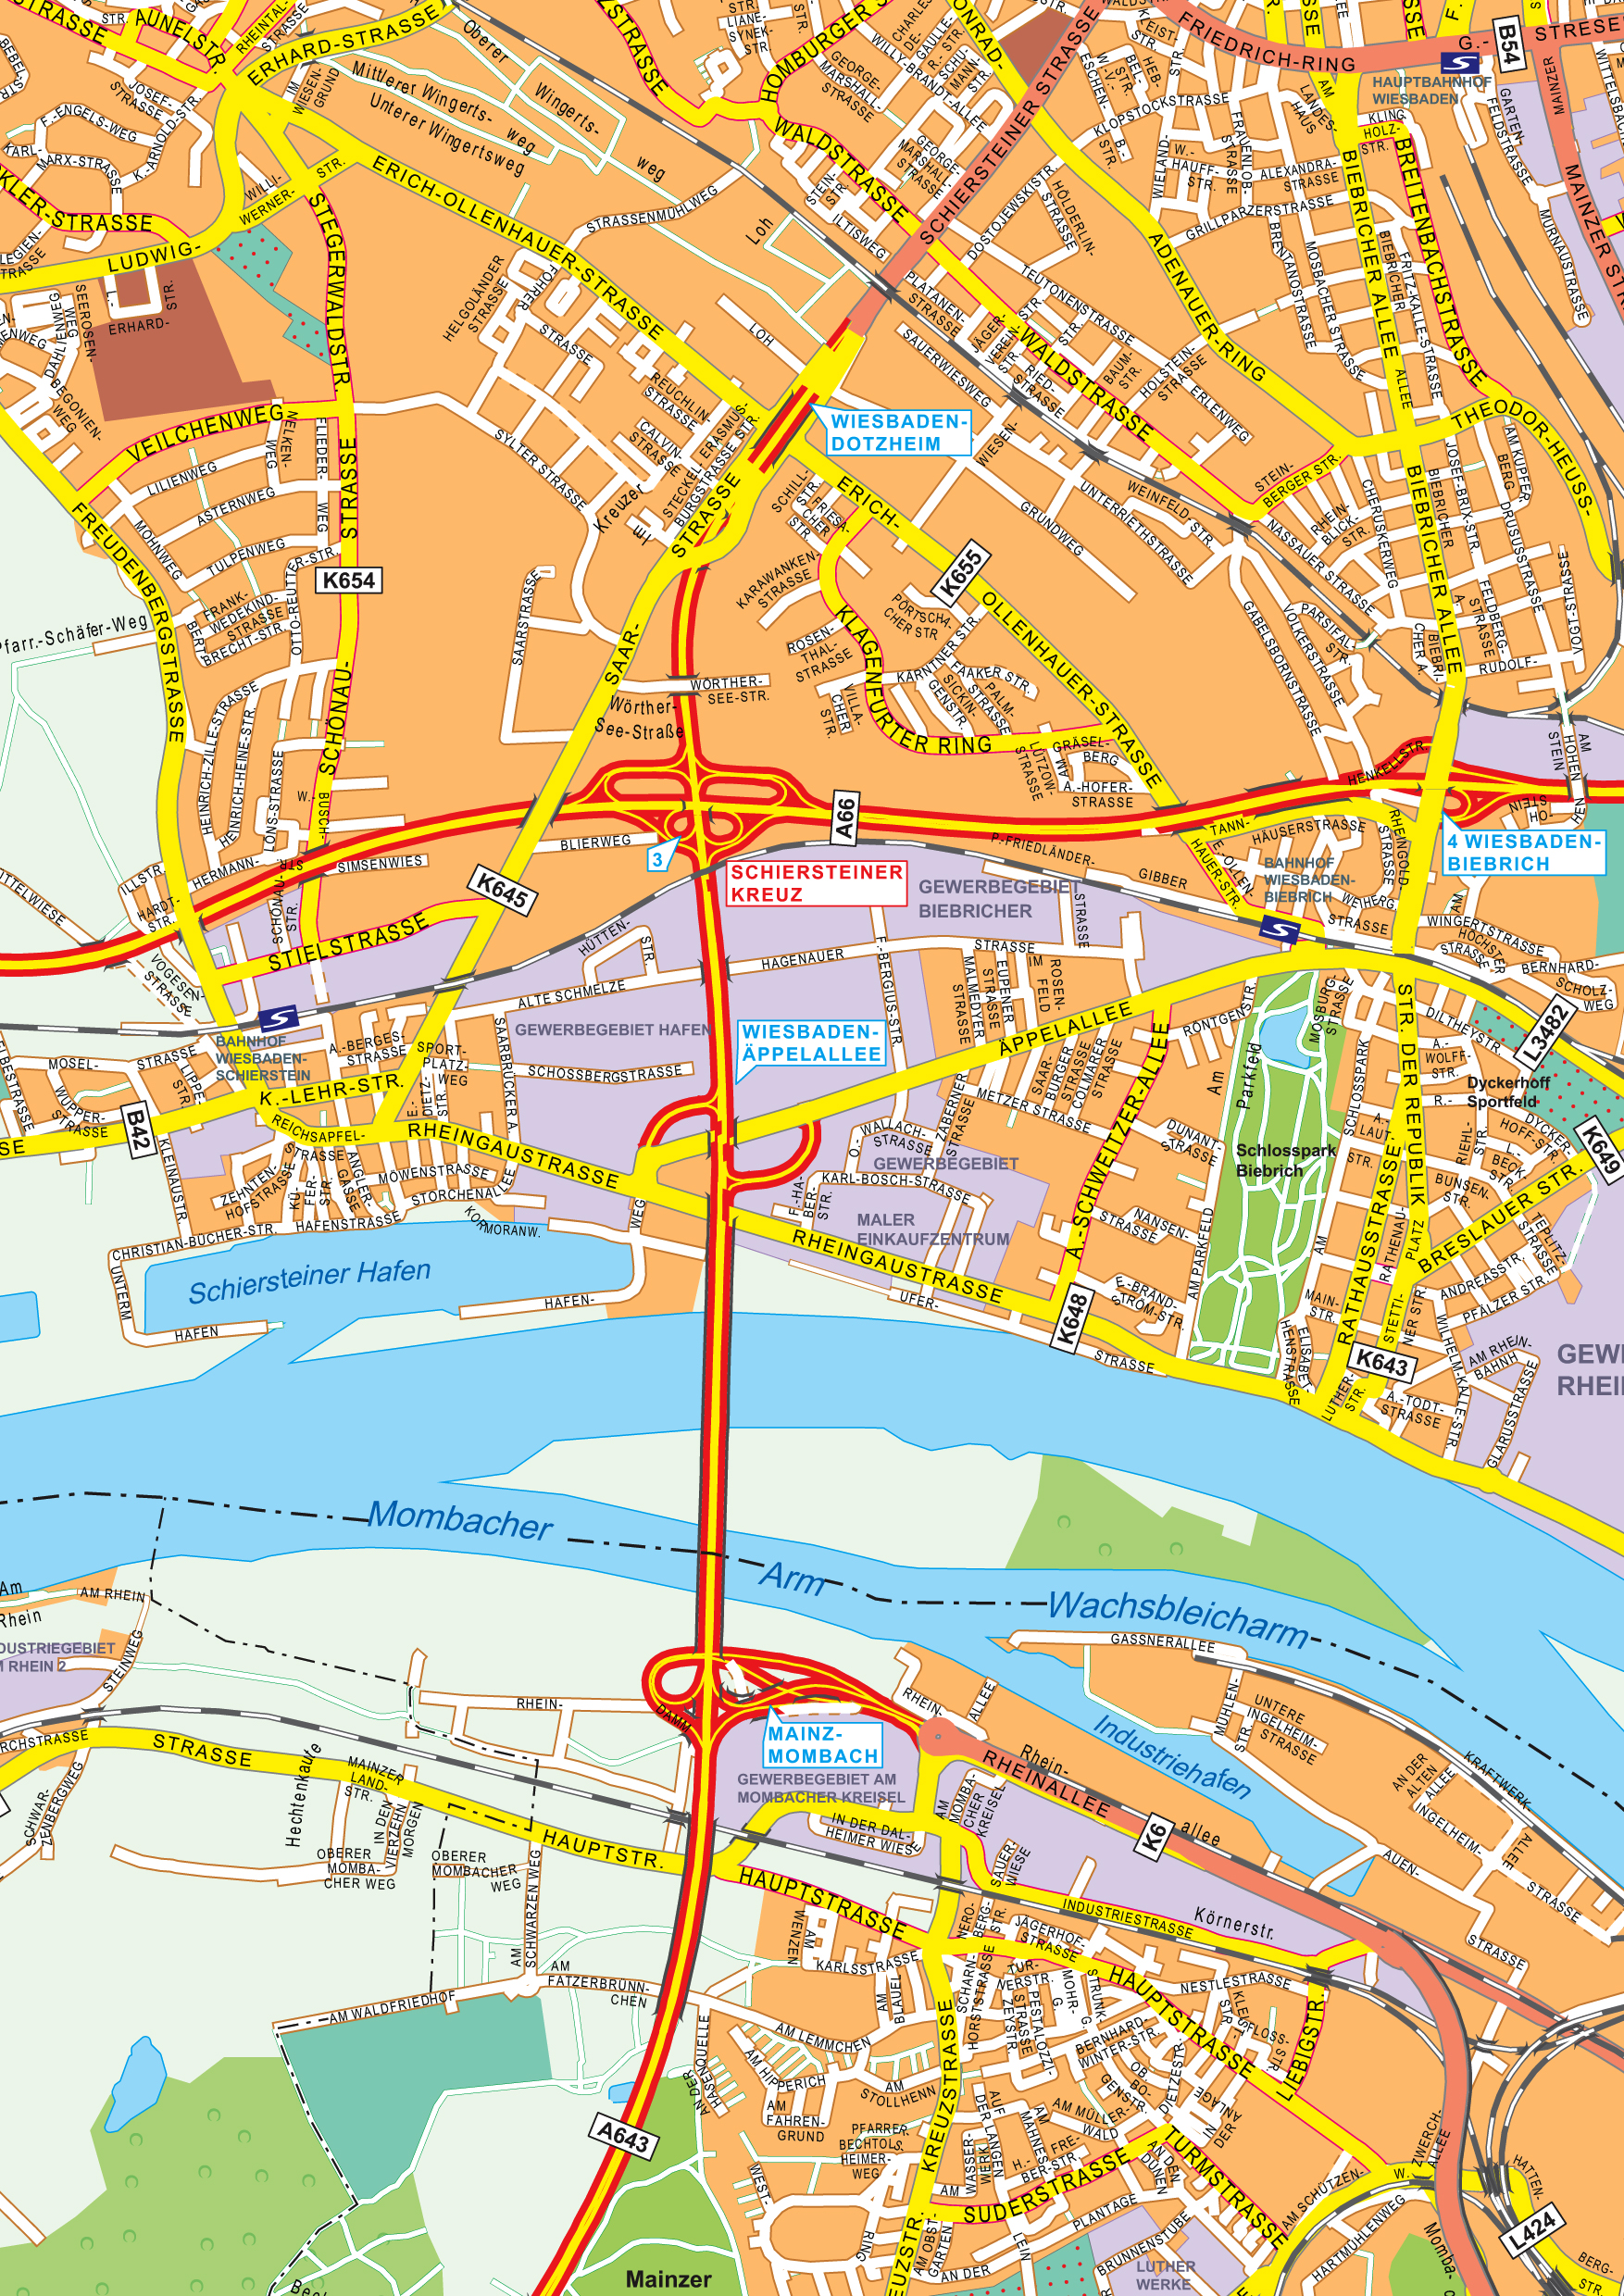 Digital City Map WiesbadenMainz 177 The World of Mapscom